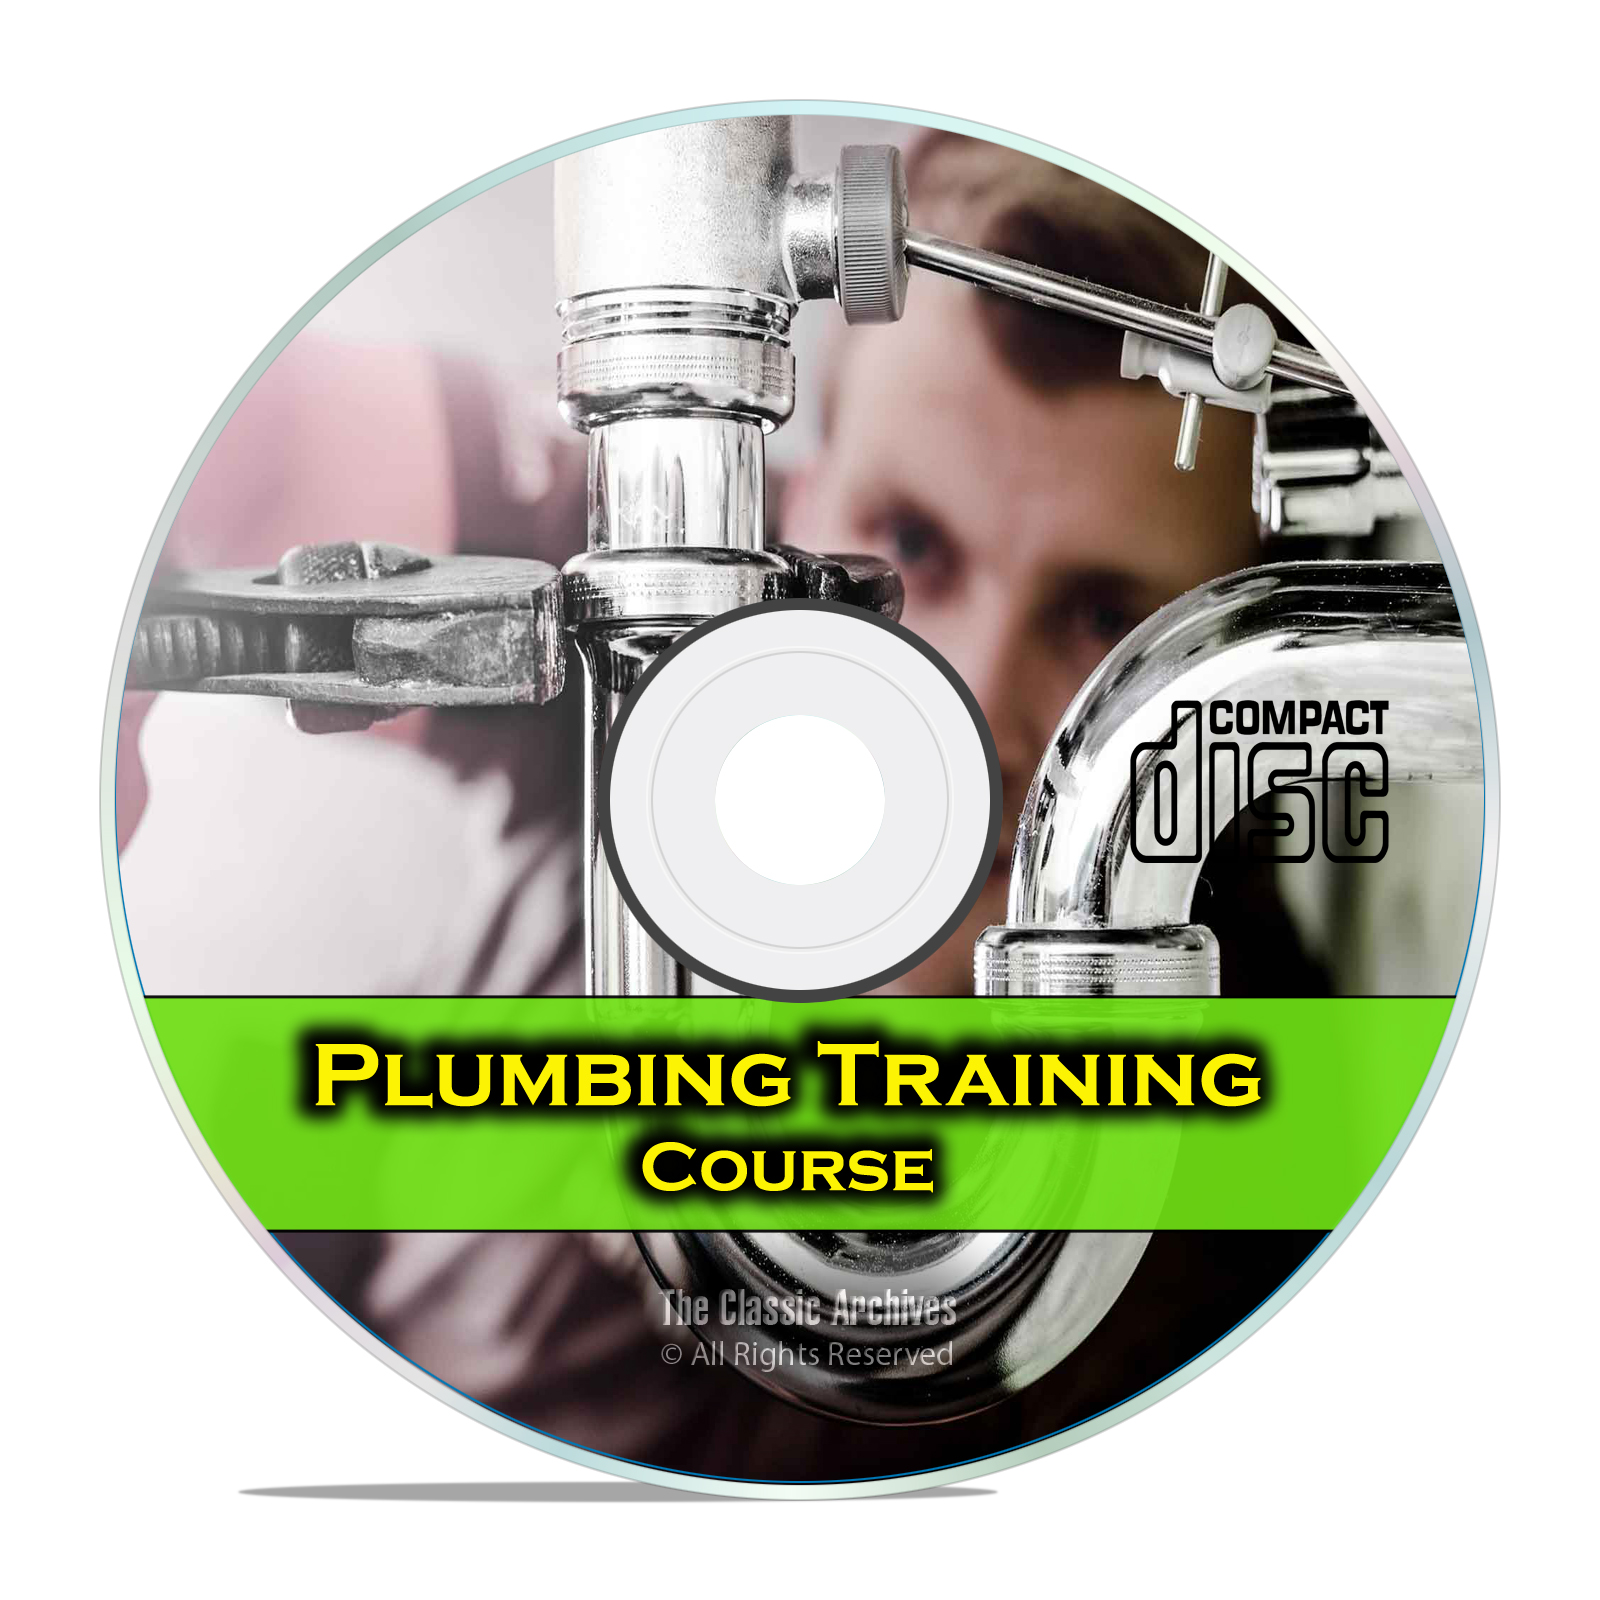 Plumber Journeyman Training Course Class, Plumbing How To Manual, DIY CD